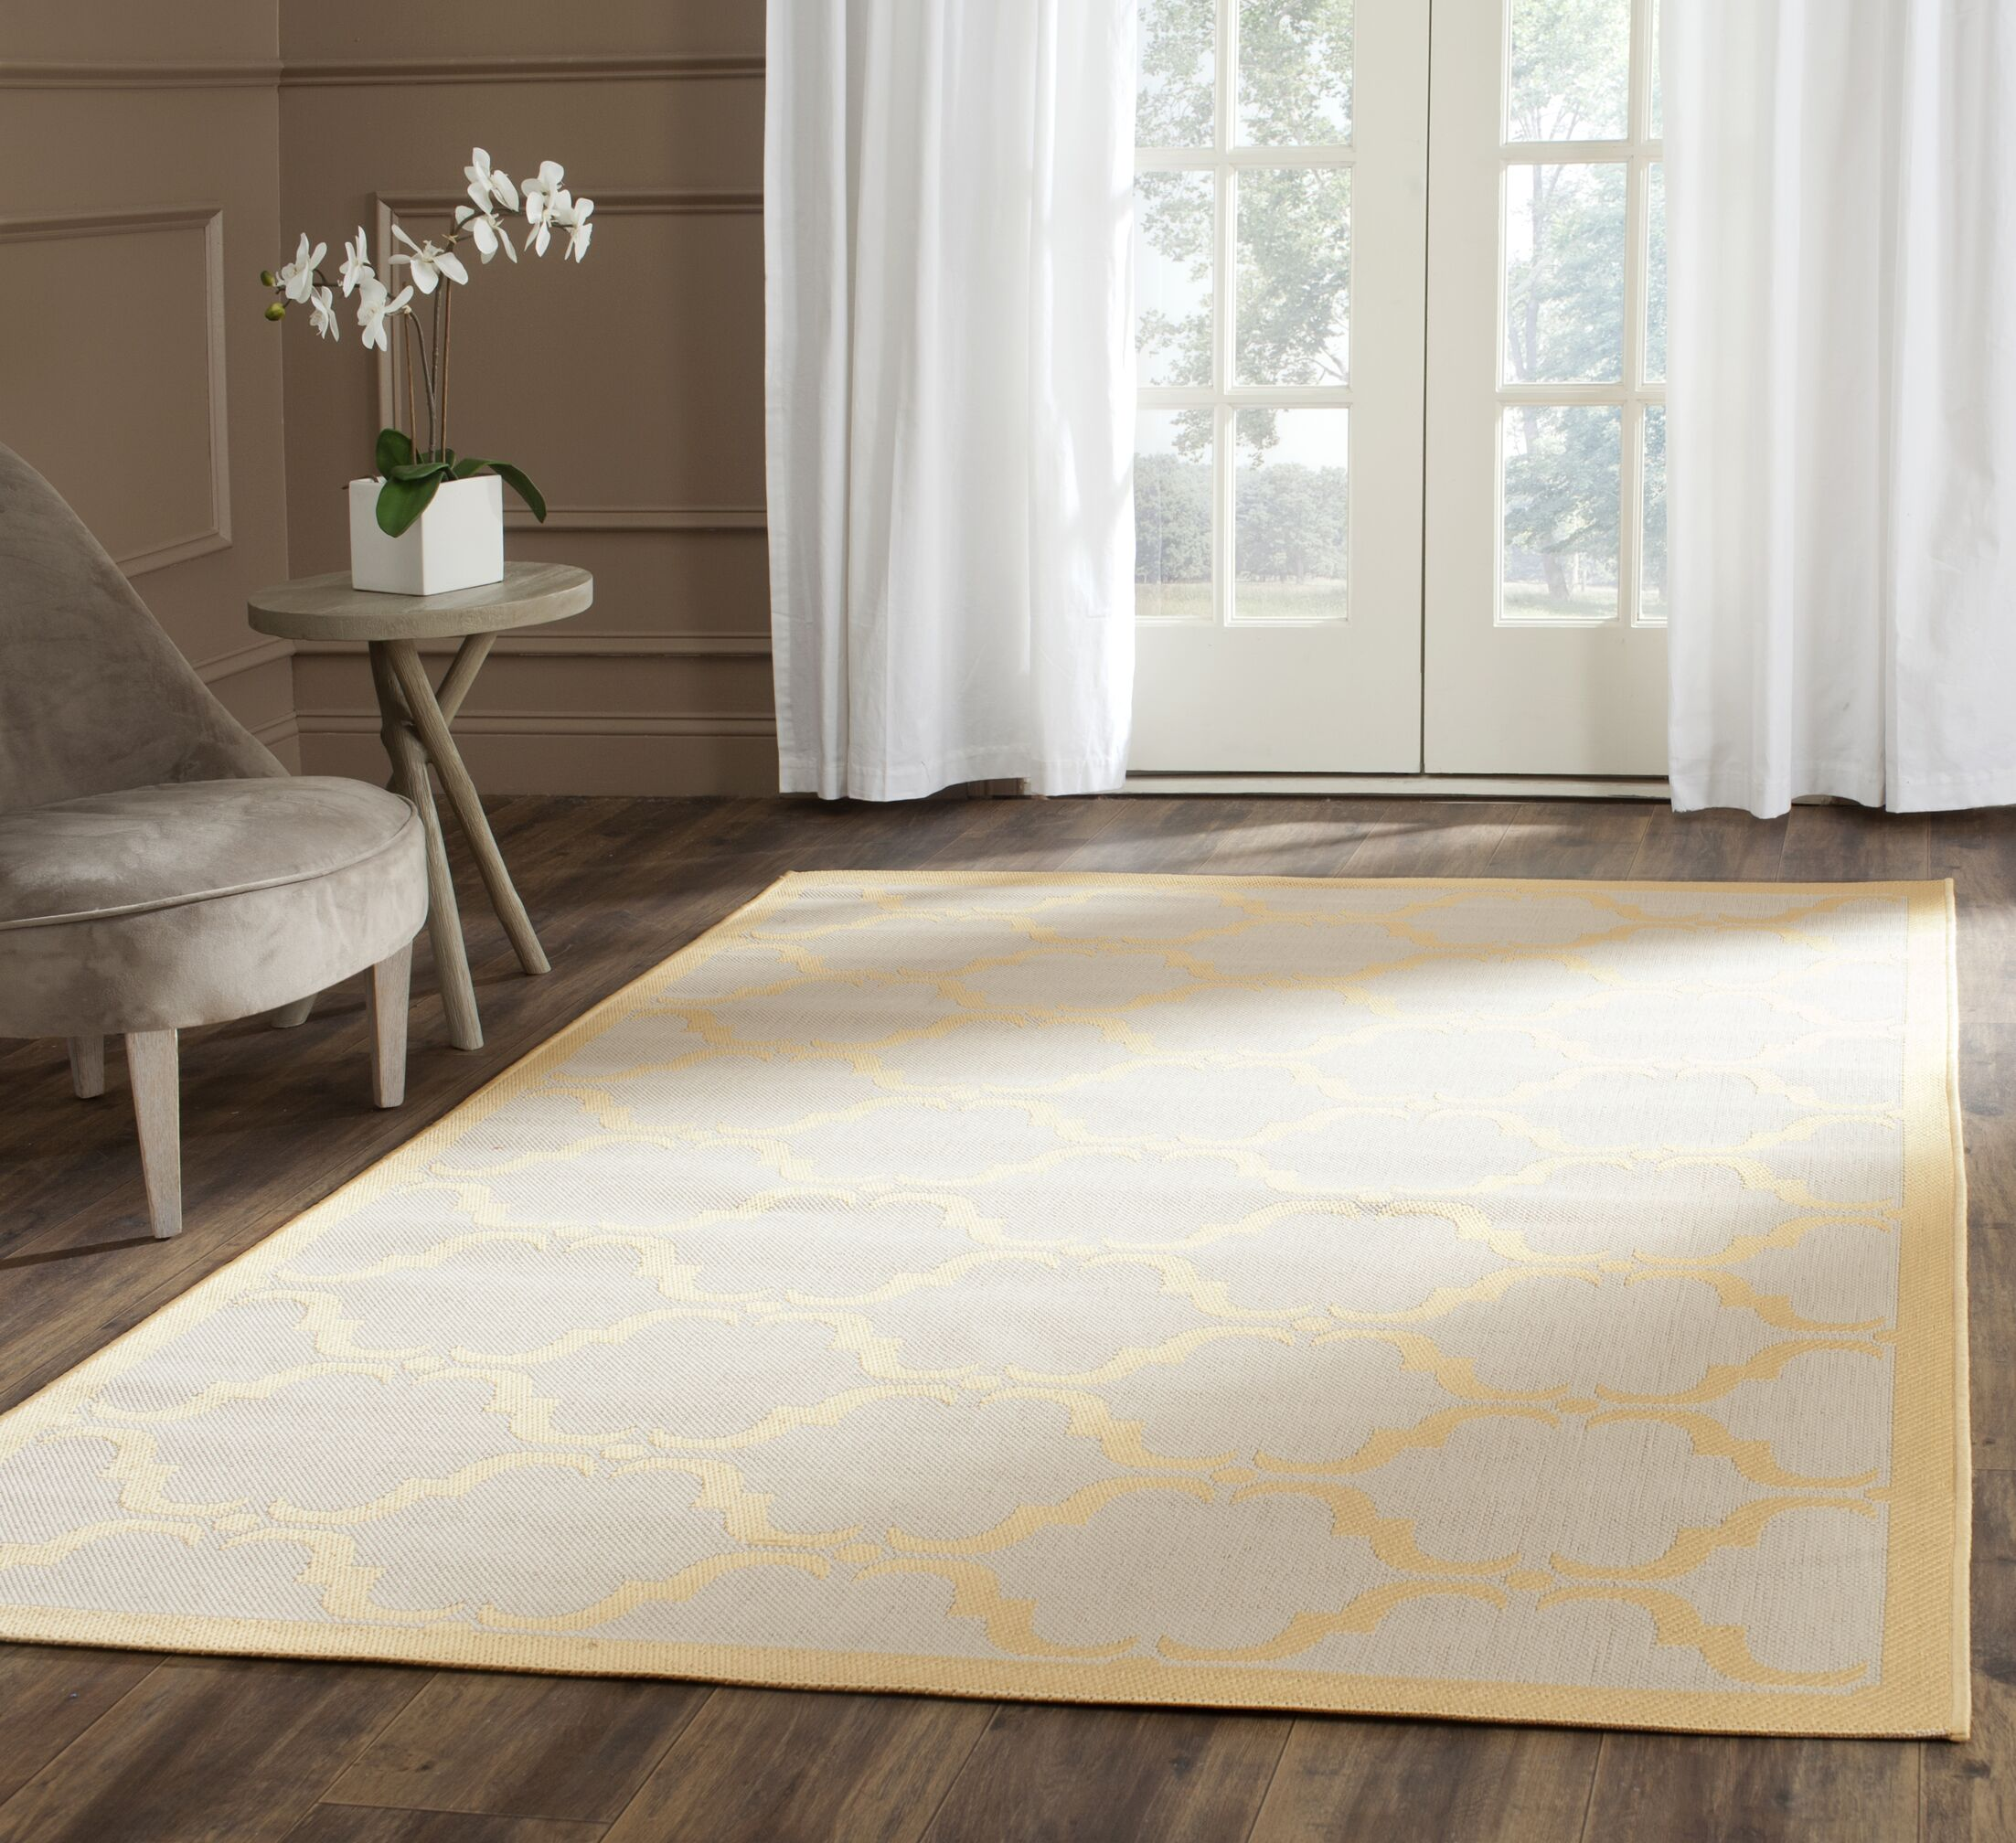 Pohl Tile Beige/Yellow Area Rug Rug Size: Rectangle 6'7